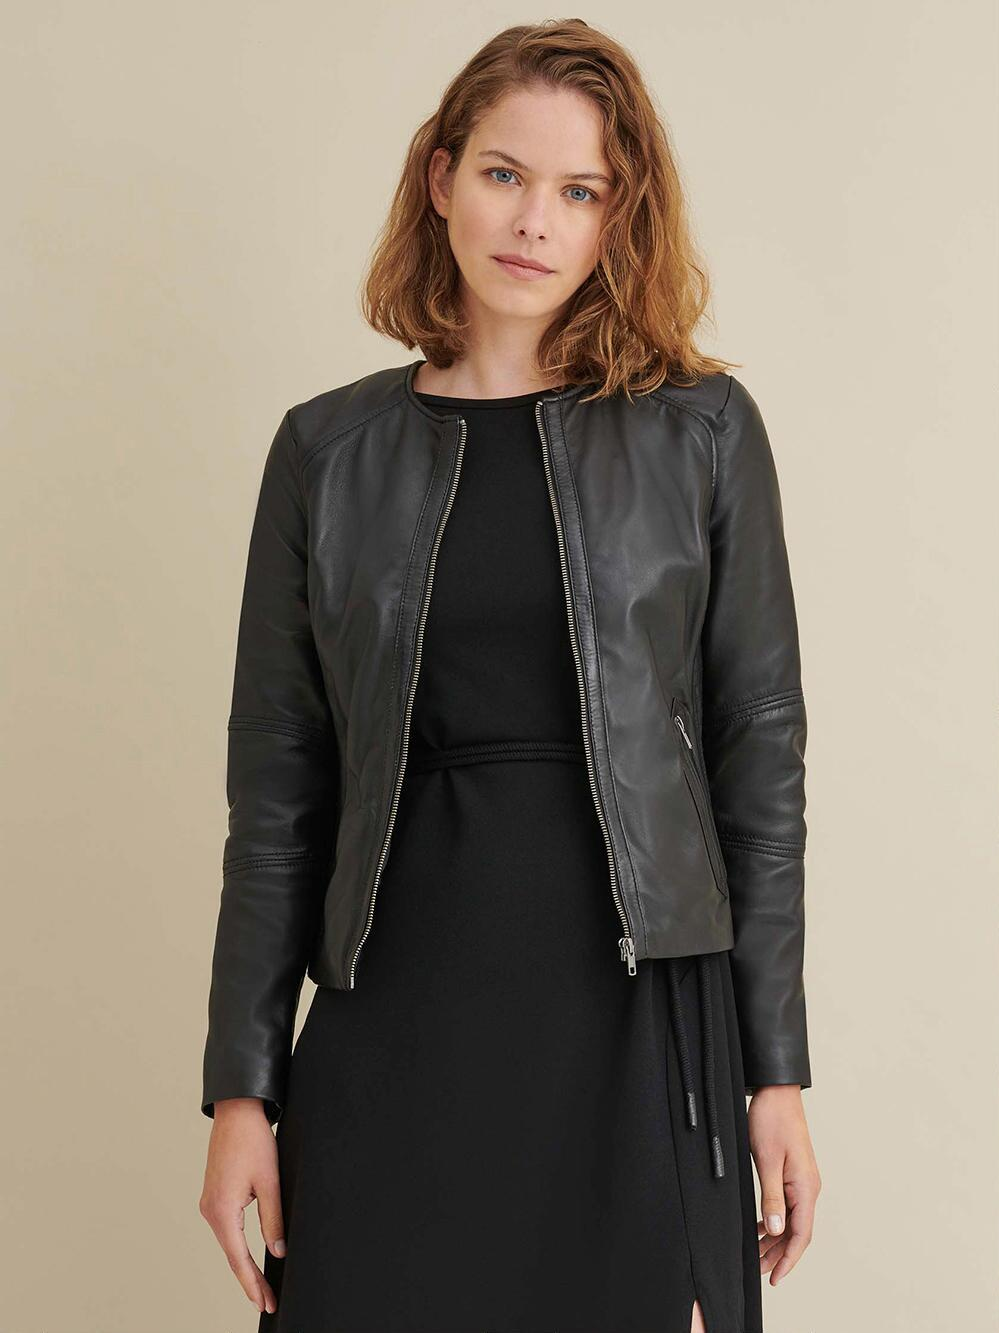 Leather Jacket with Side Stitching for Womens